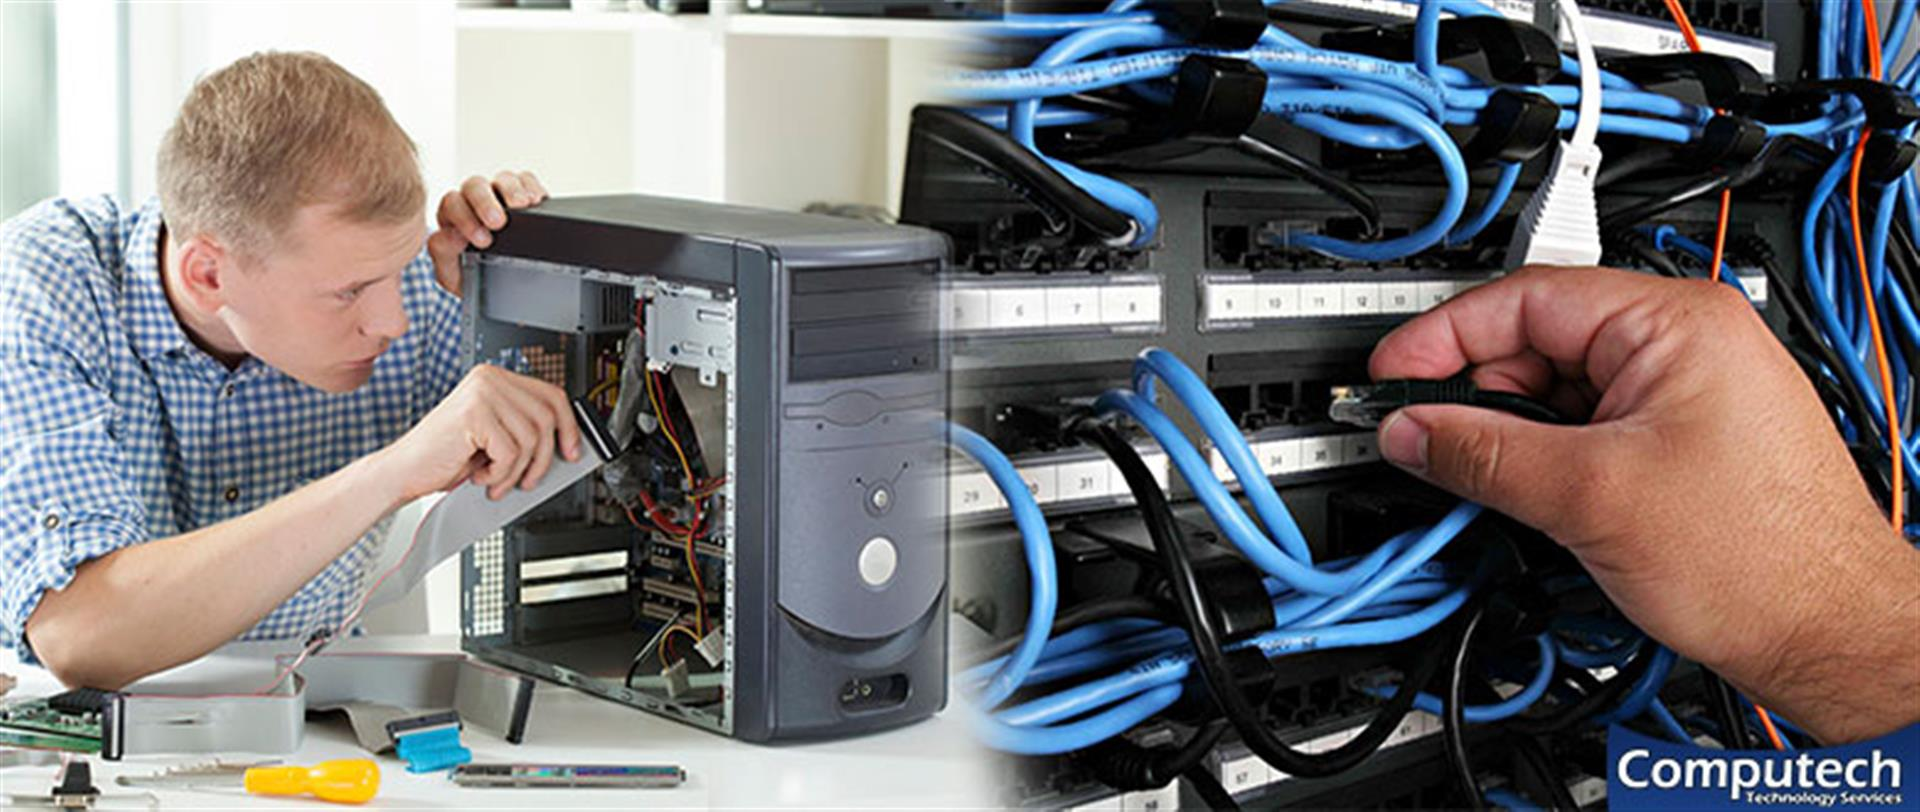 Senoia Georgia Onsite Computer PC & Printer Repair, Network, Voice & Data Cabling Contractors